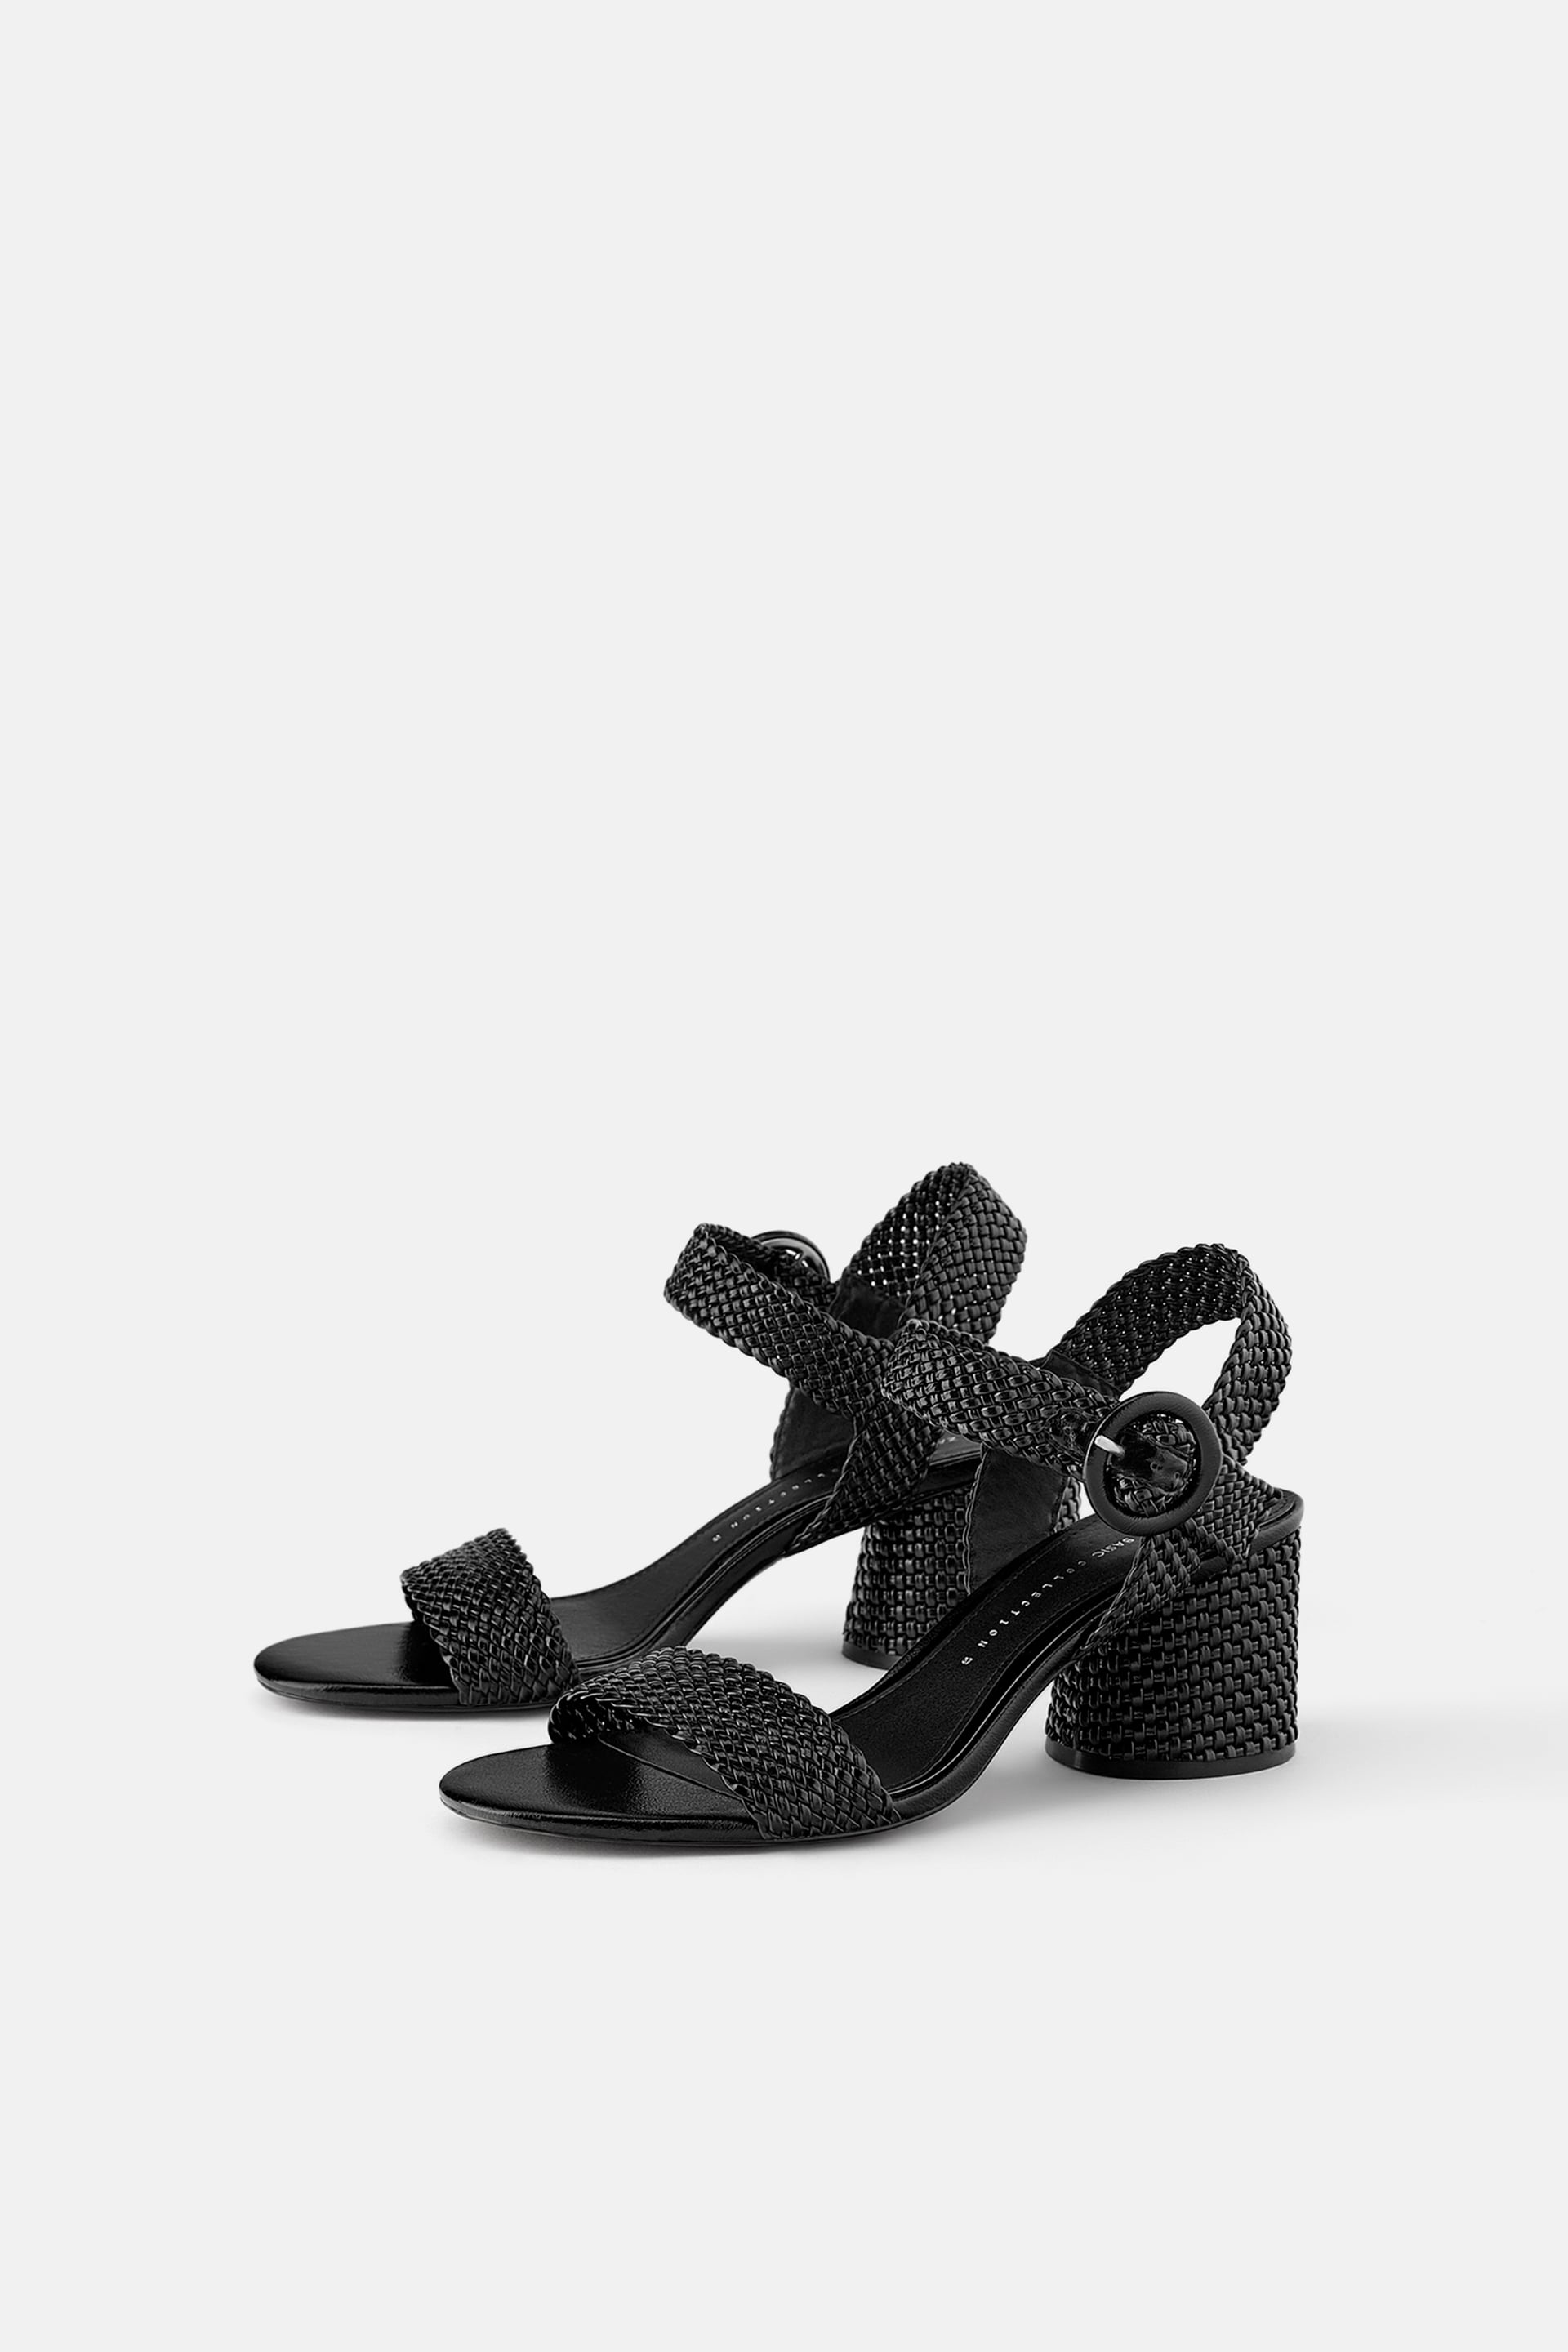 Wide Heeled Woven Sandals View All Shoes Woman by Zara